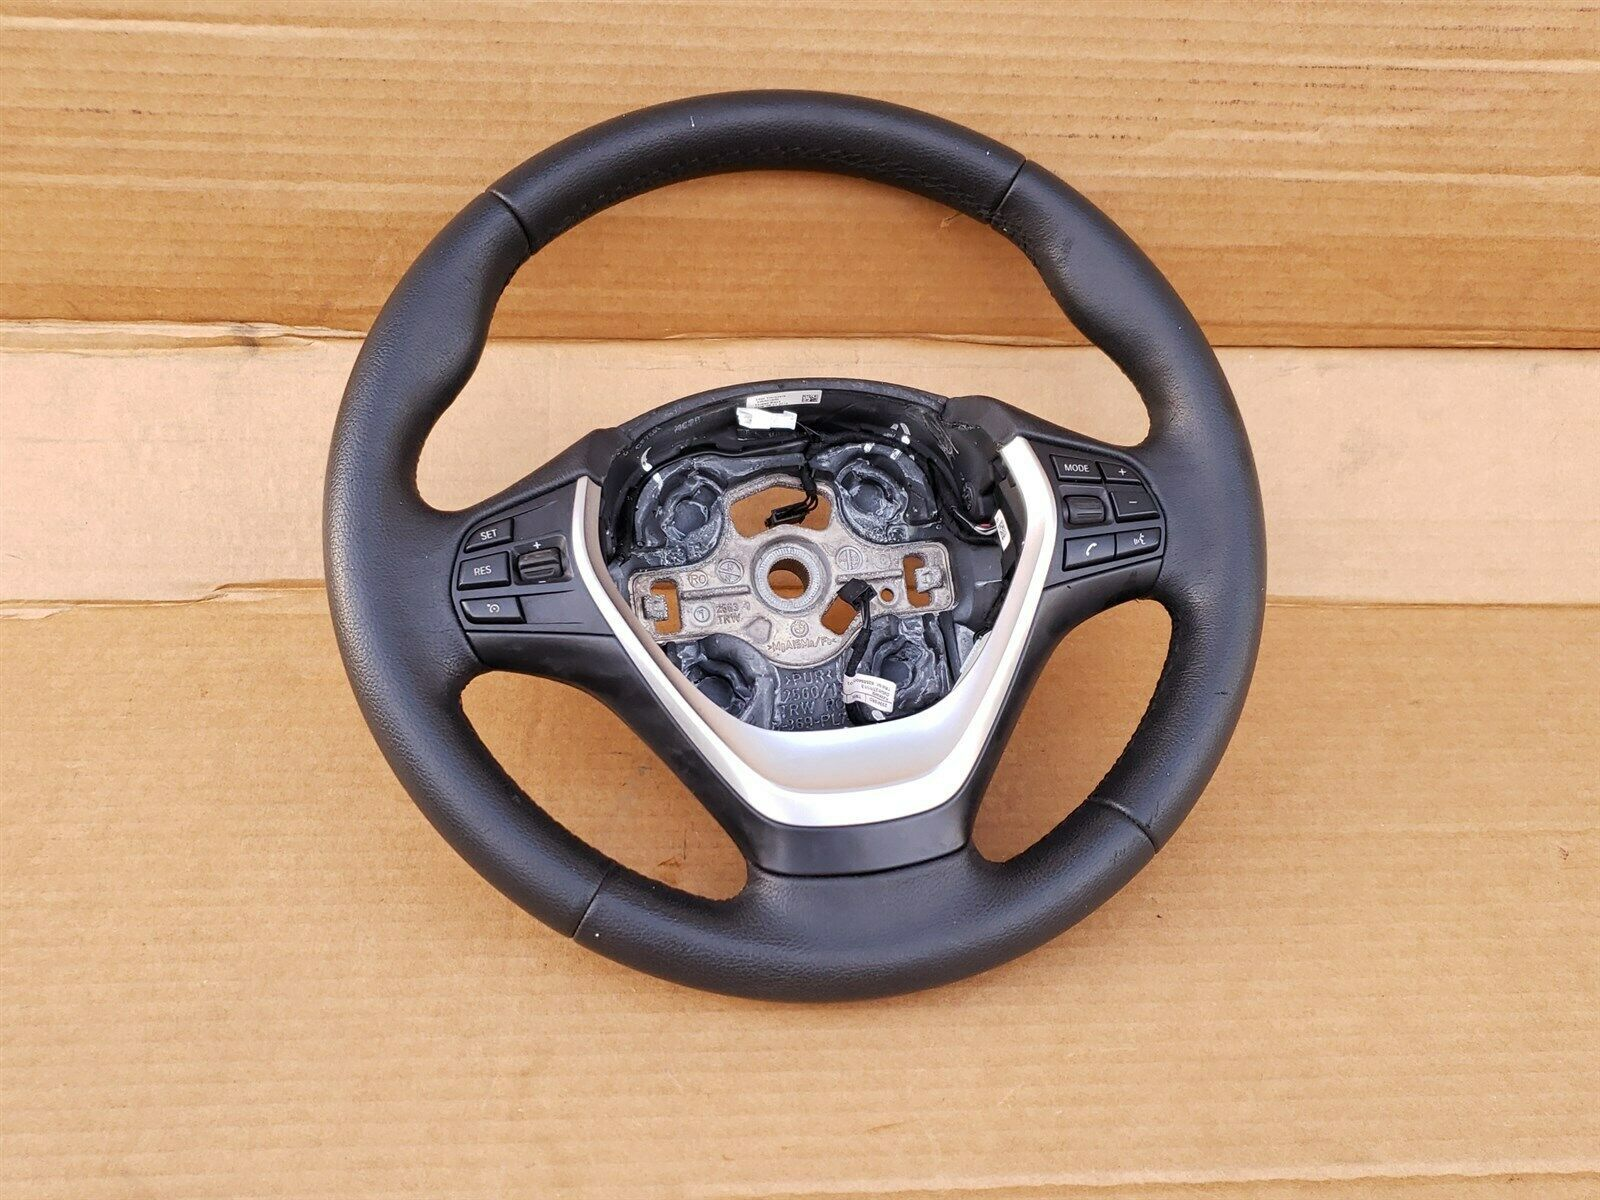 12-18 BMW F30 Sport Steering Wheel w/ Cruise BT Volume Switches W/O Paddles